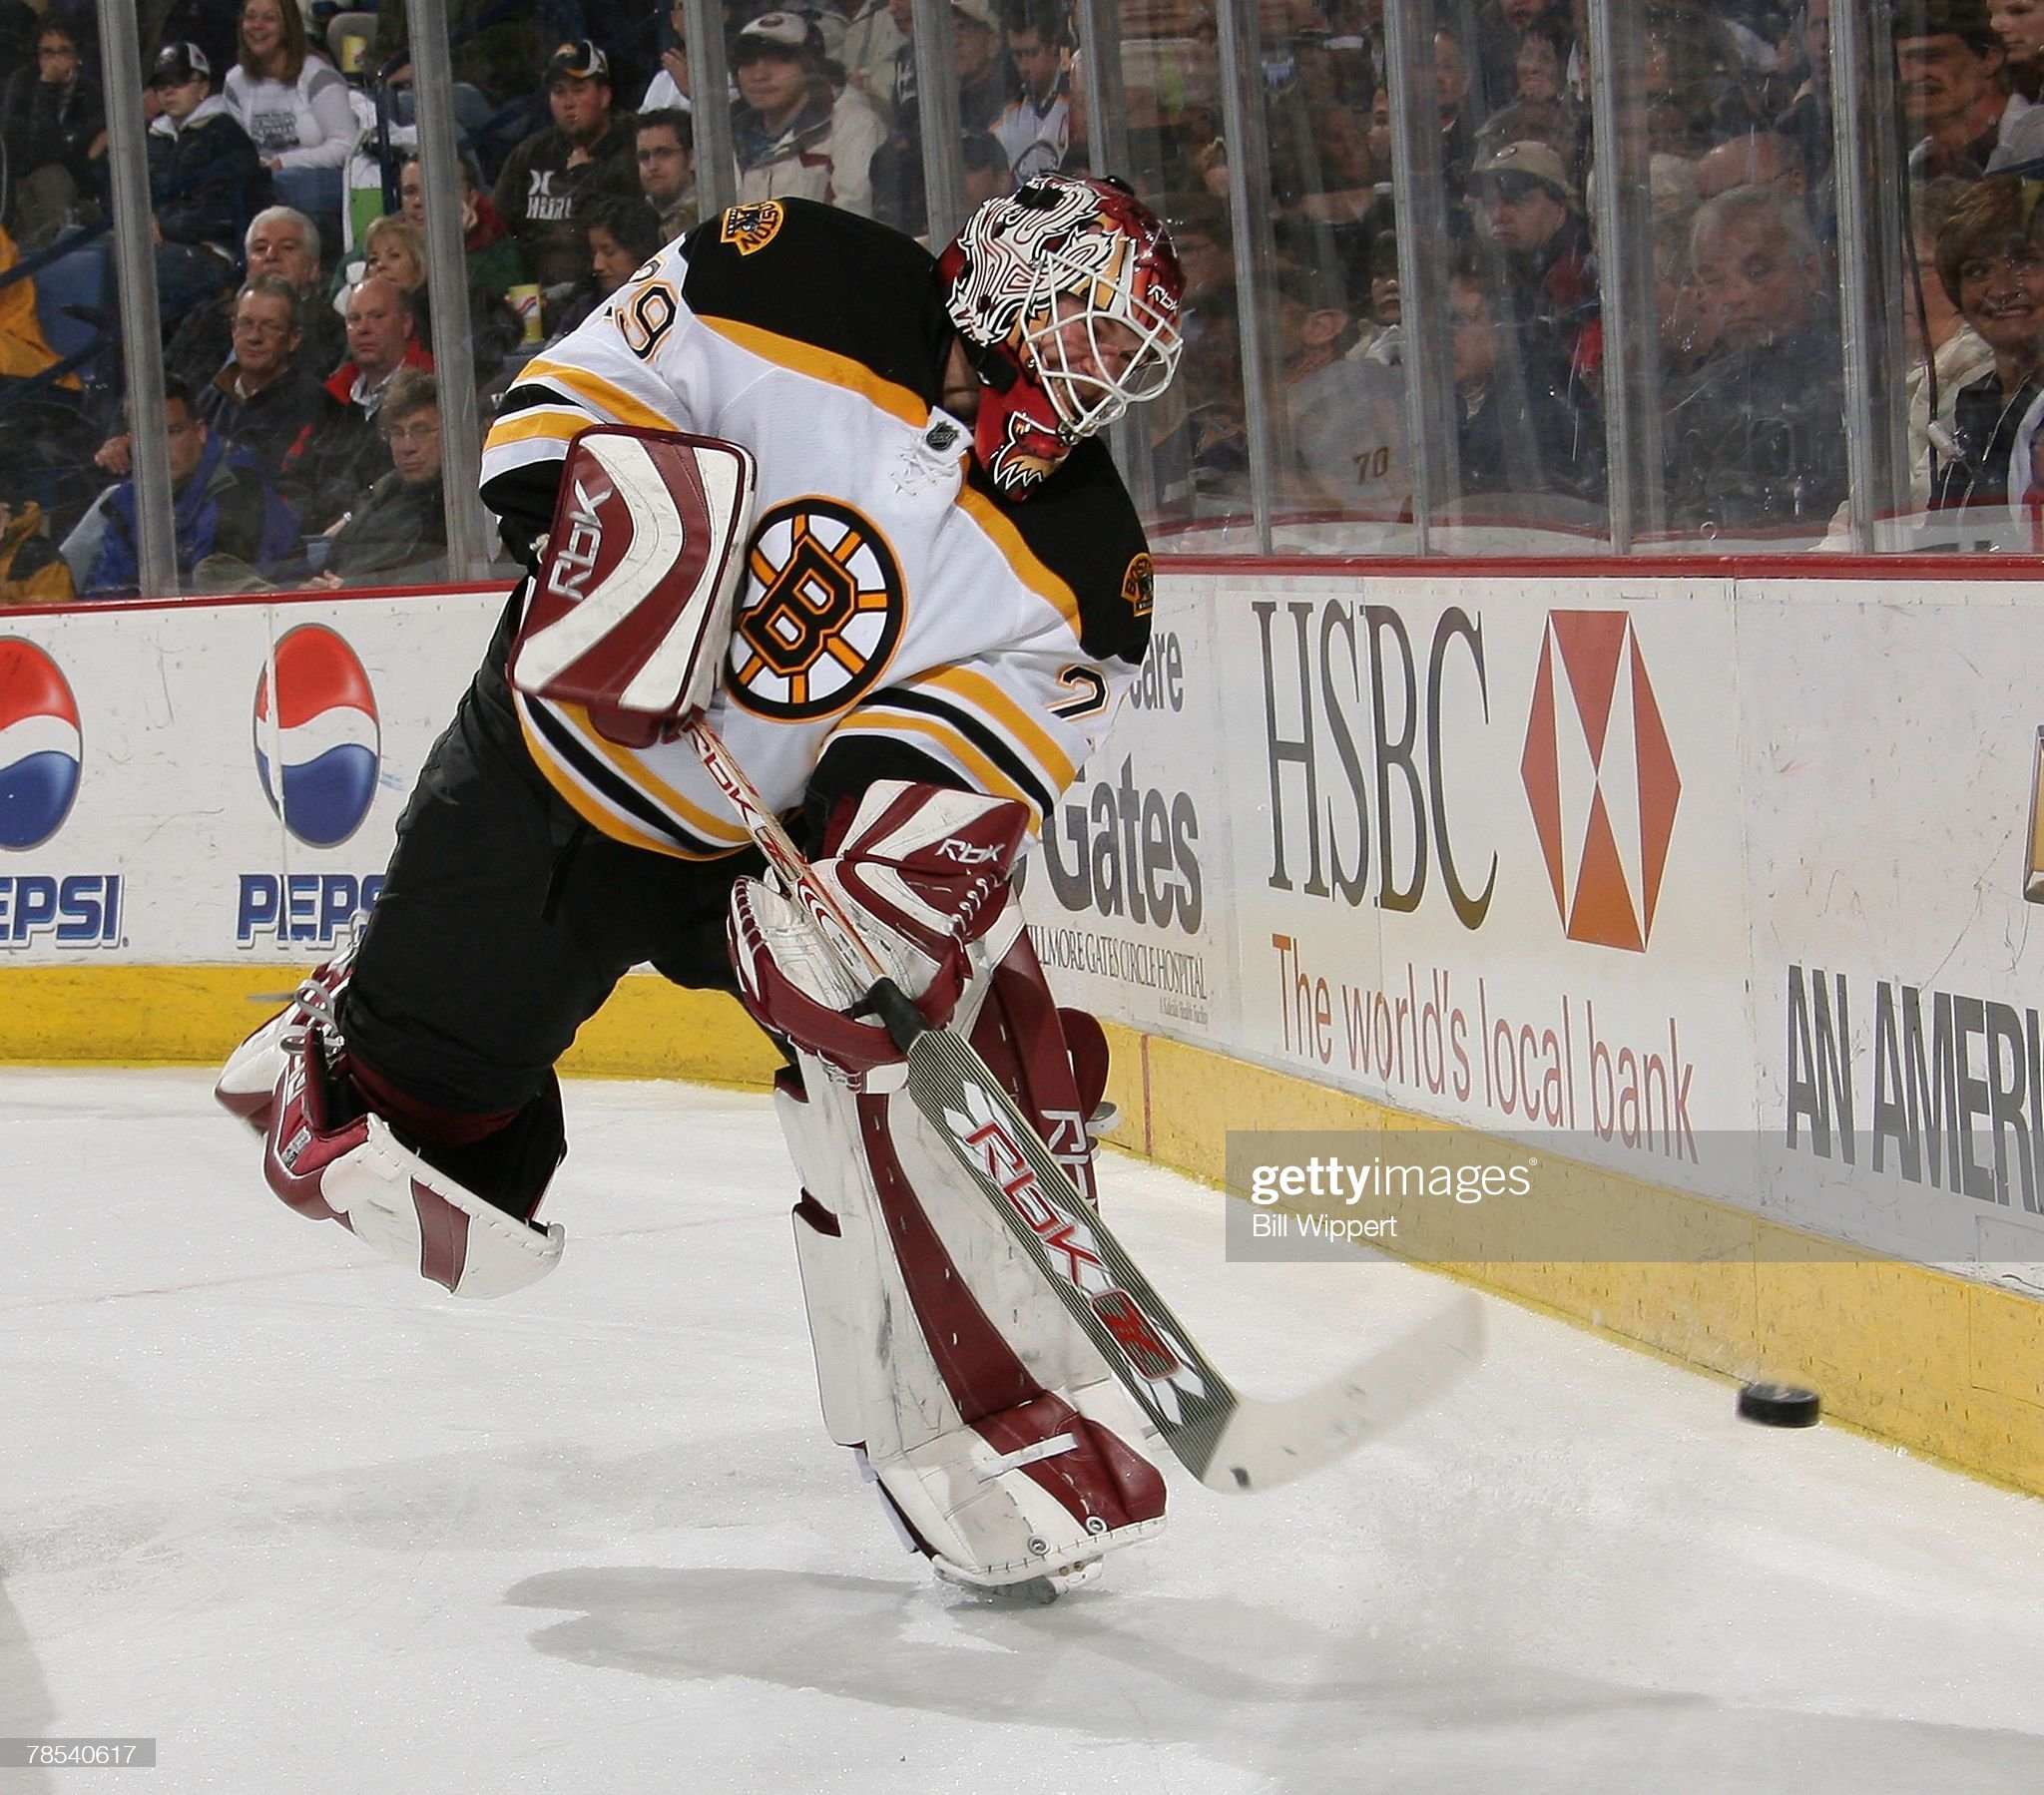 alex-auld-of-the-boston-bruins-clears-th